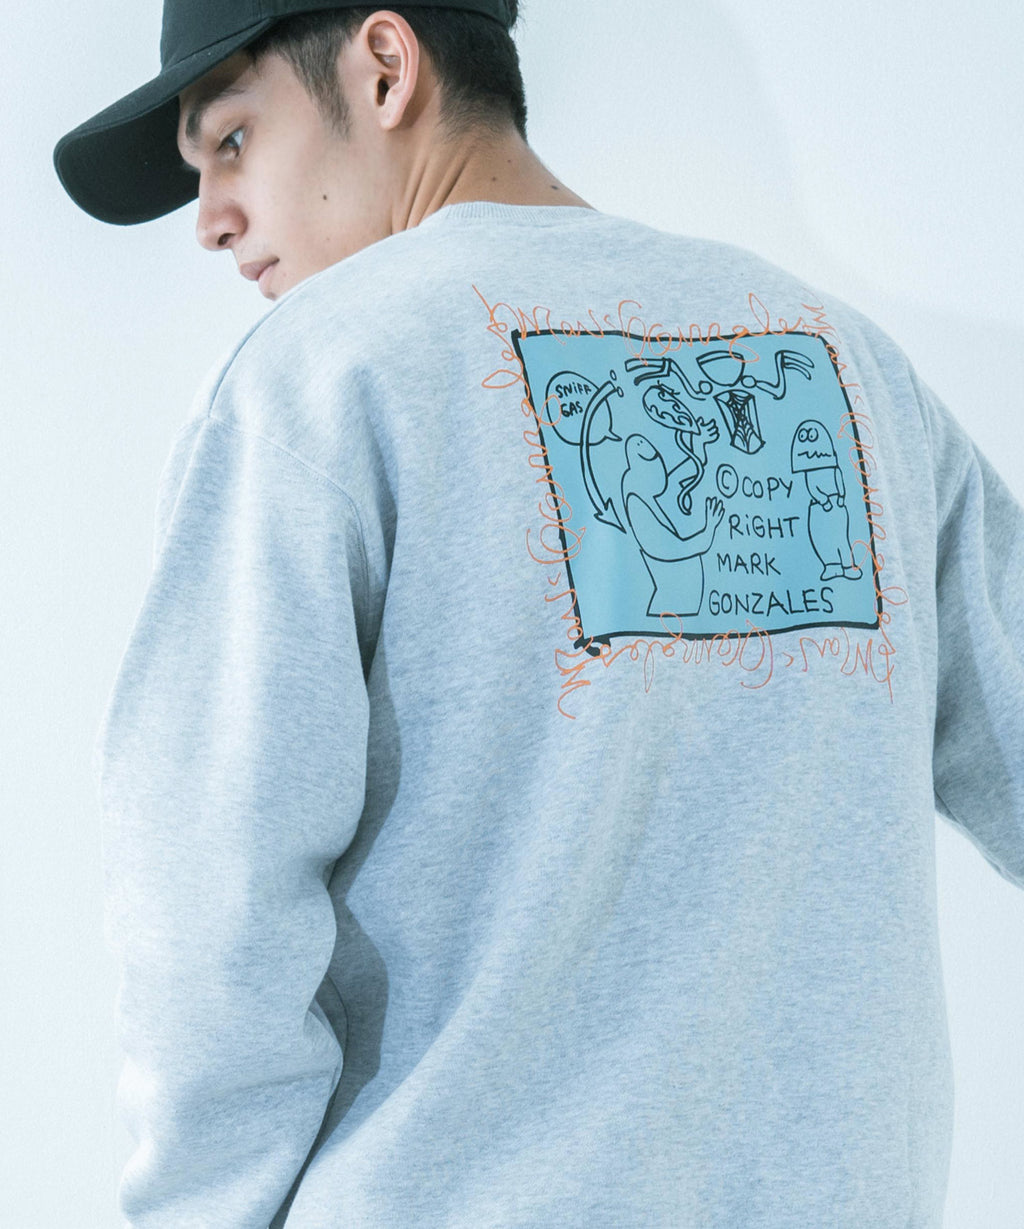 RESSACA MARK GONZALES Sniff Gasプリント SWEATSHIRT / 9741